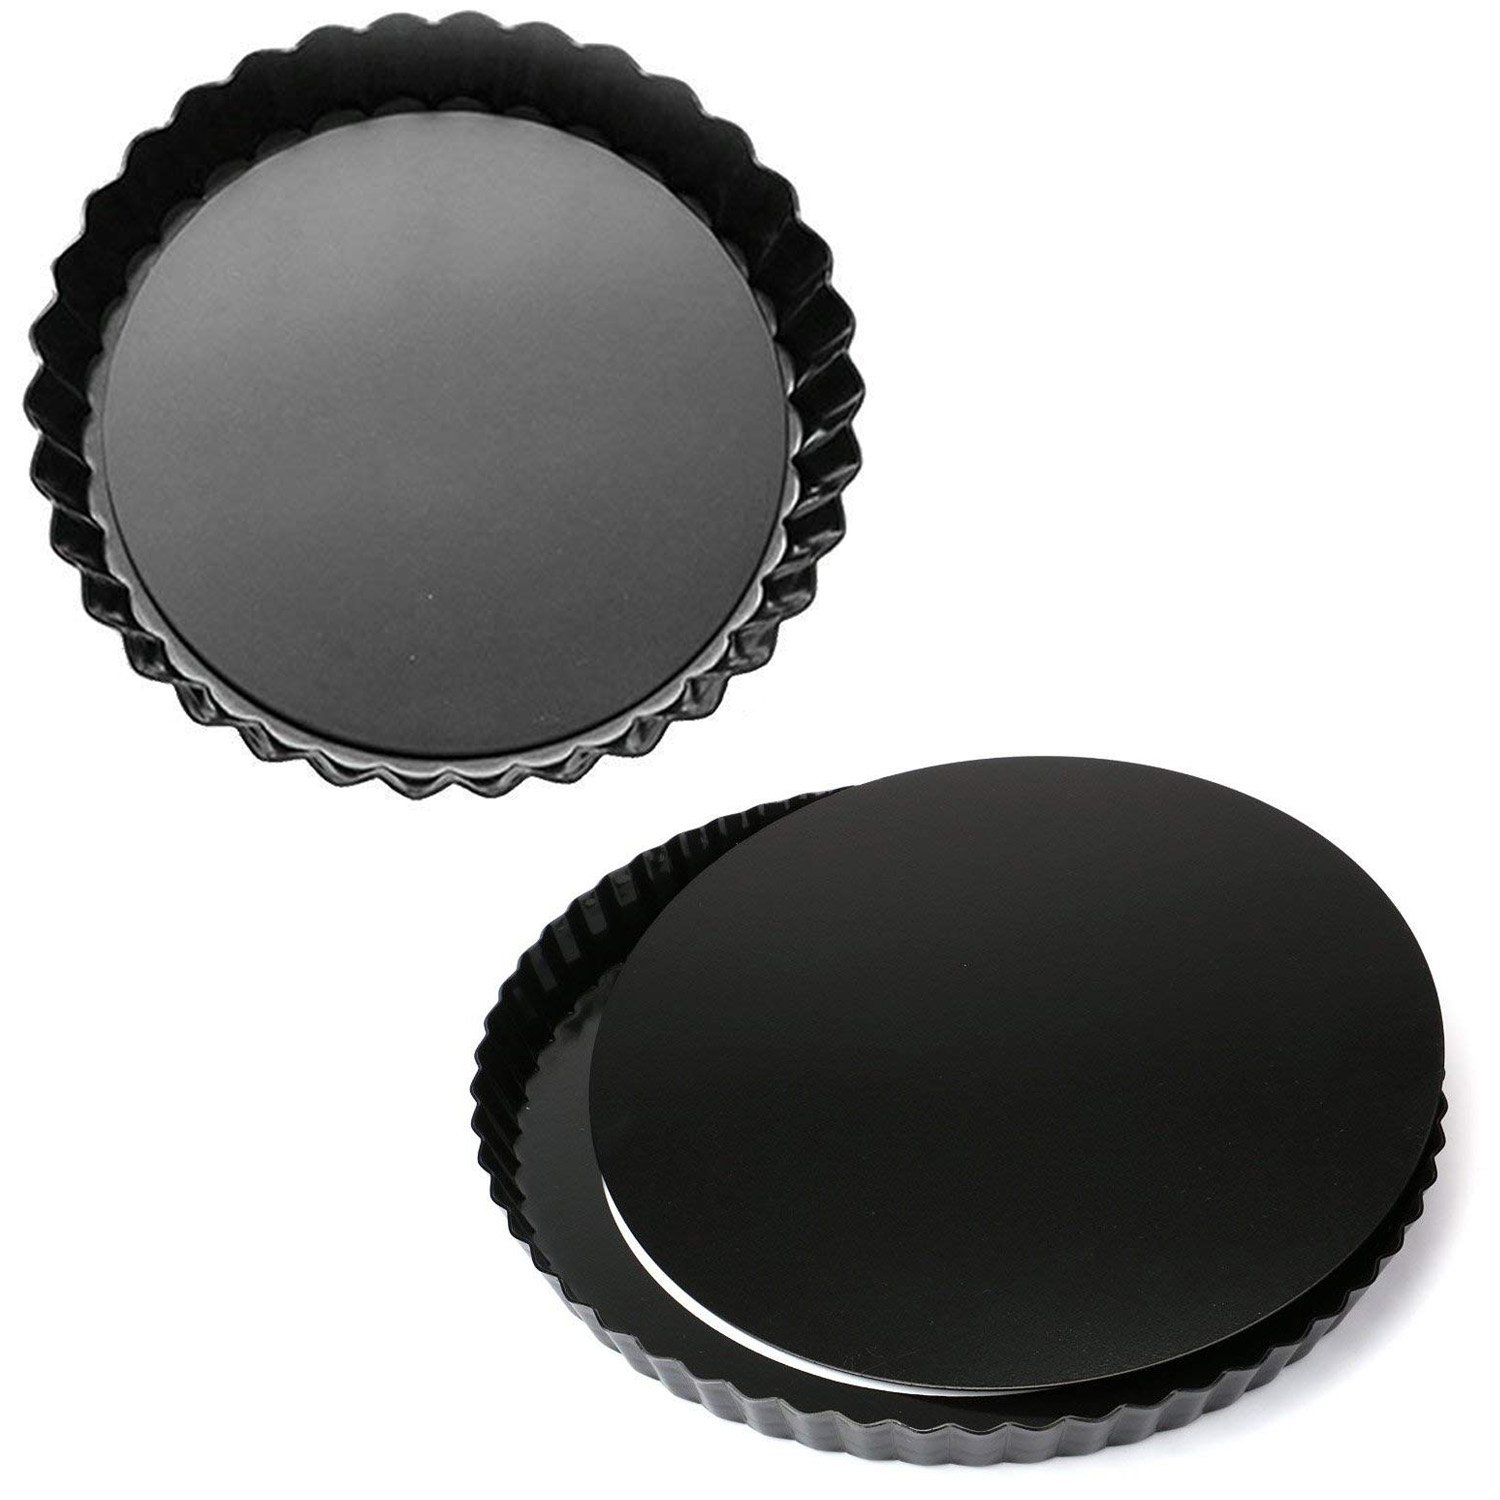 MJ Kitchen 2 Pack 11 Inch Removable Bottom Tart Pan, Quiche Pan, Pie Pan with Removable Base, Non-Stick Tart Pie Quiche Baking Dish